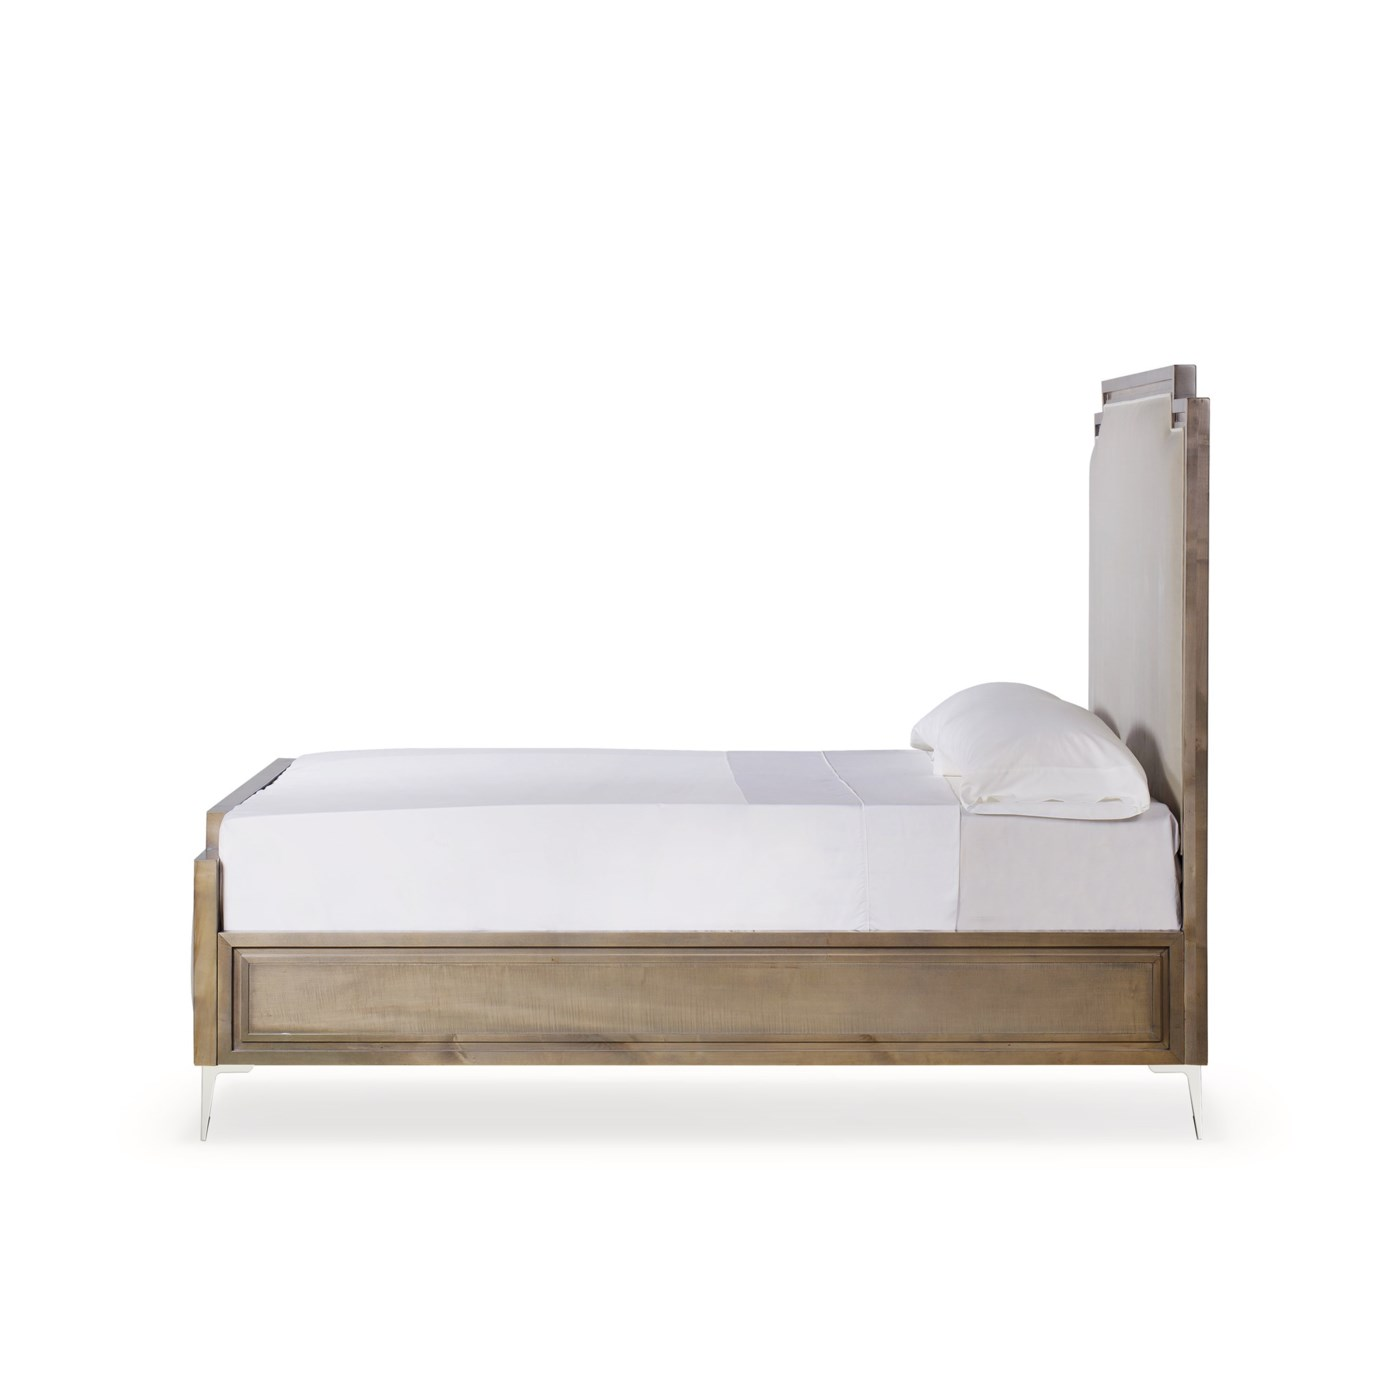 Chloe Upholstered Bed - US King / Vera Whisper